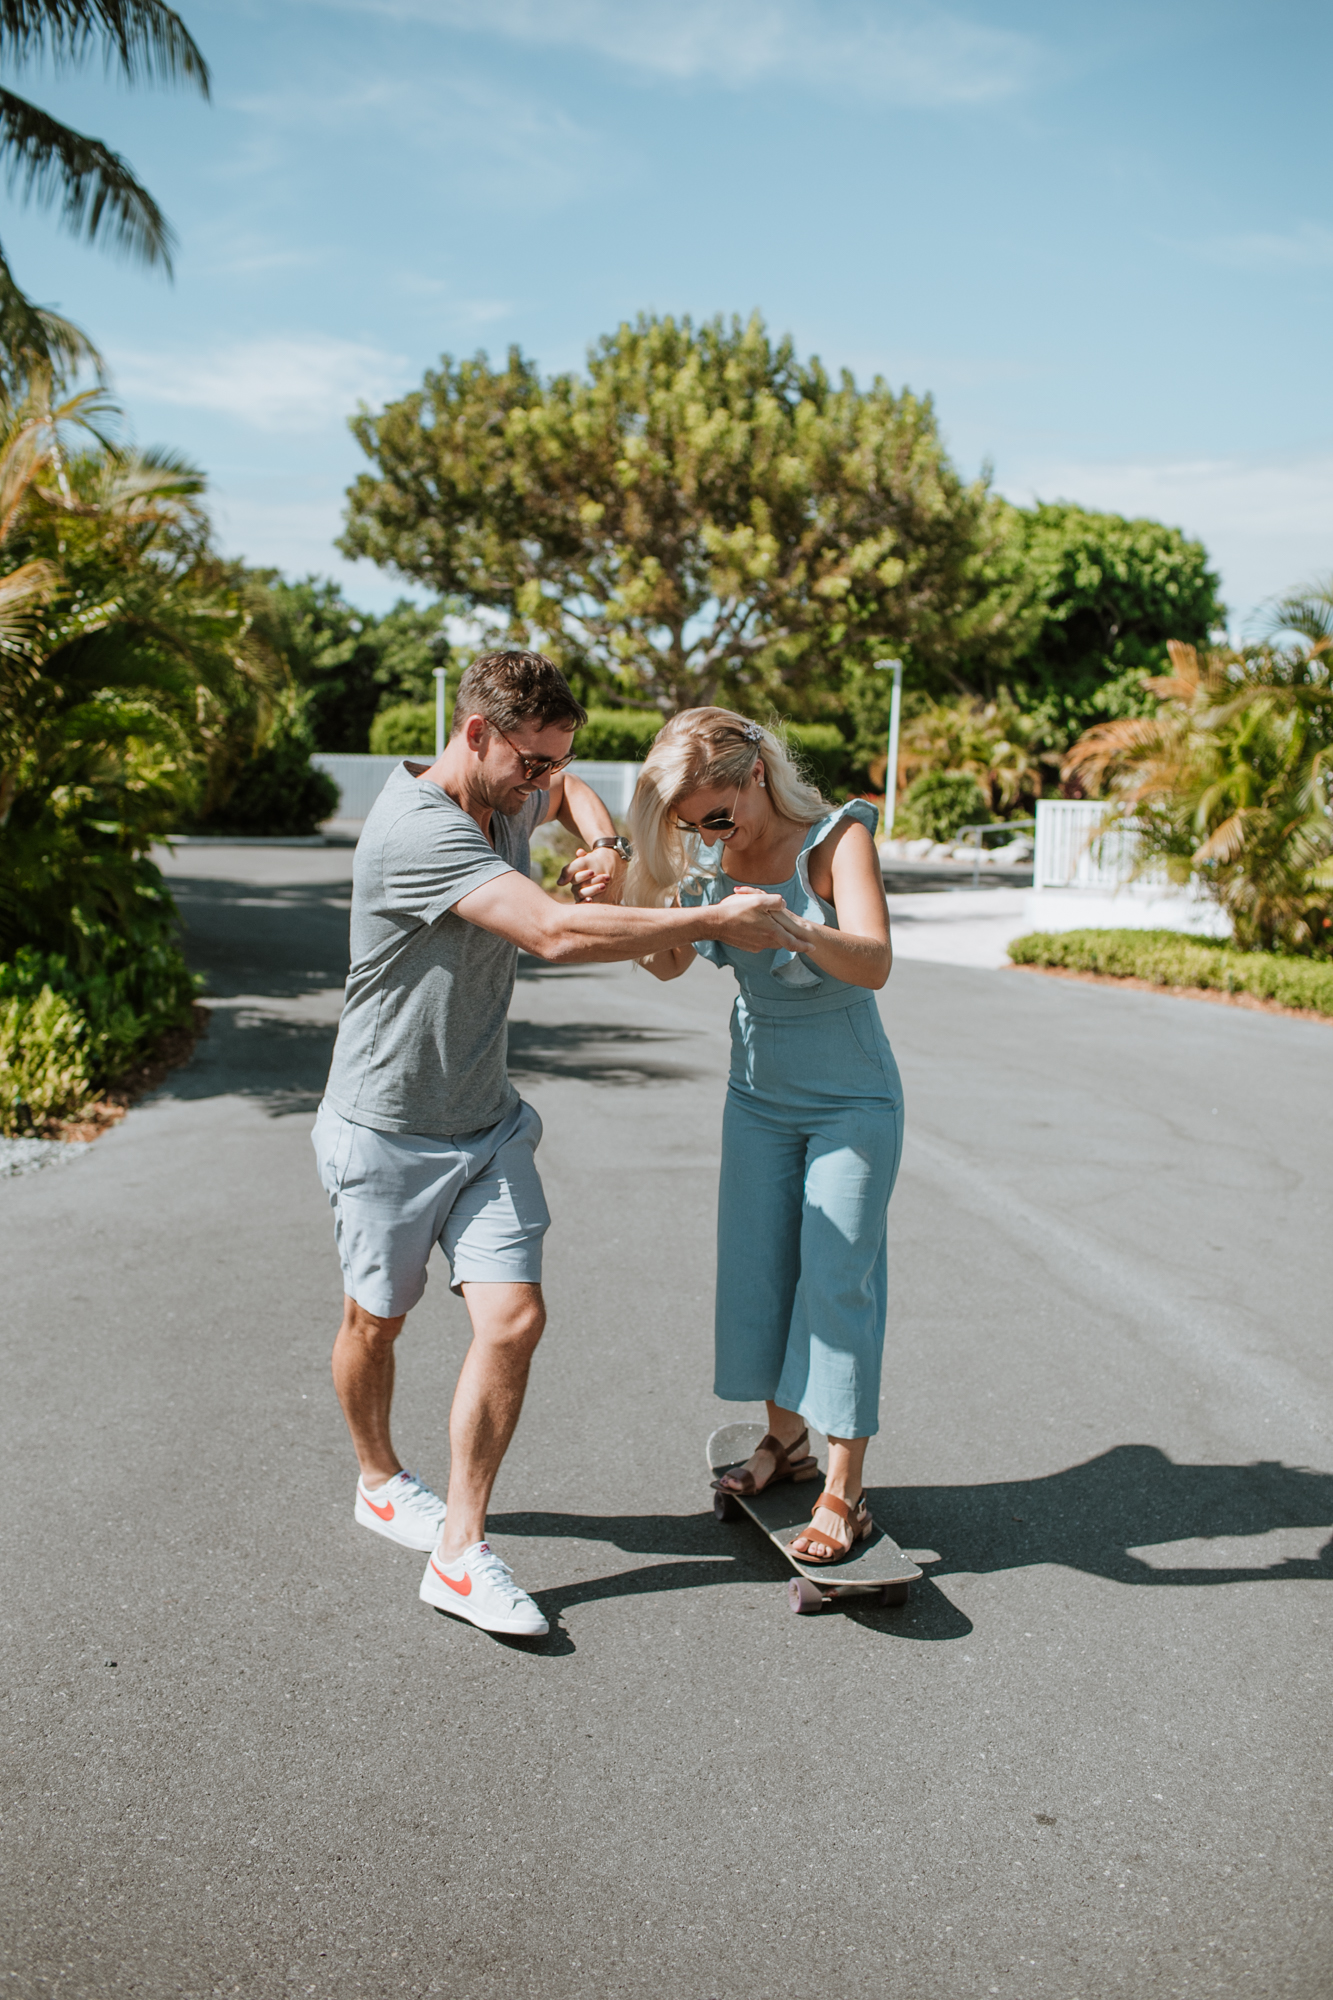 Fun couple skateboarding during their engagement shoot